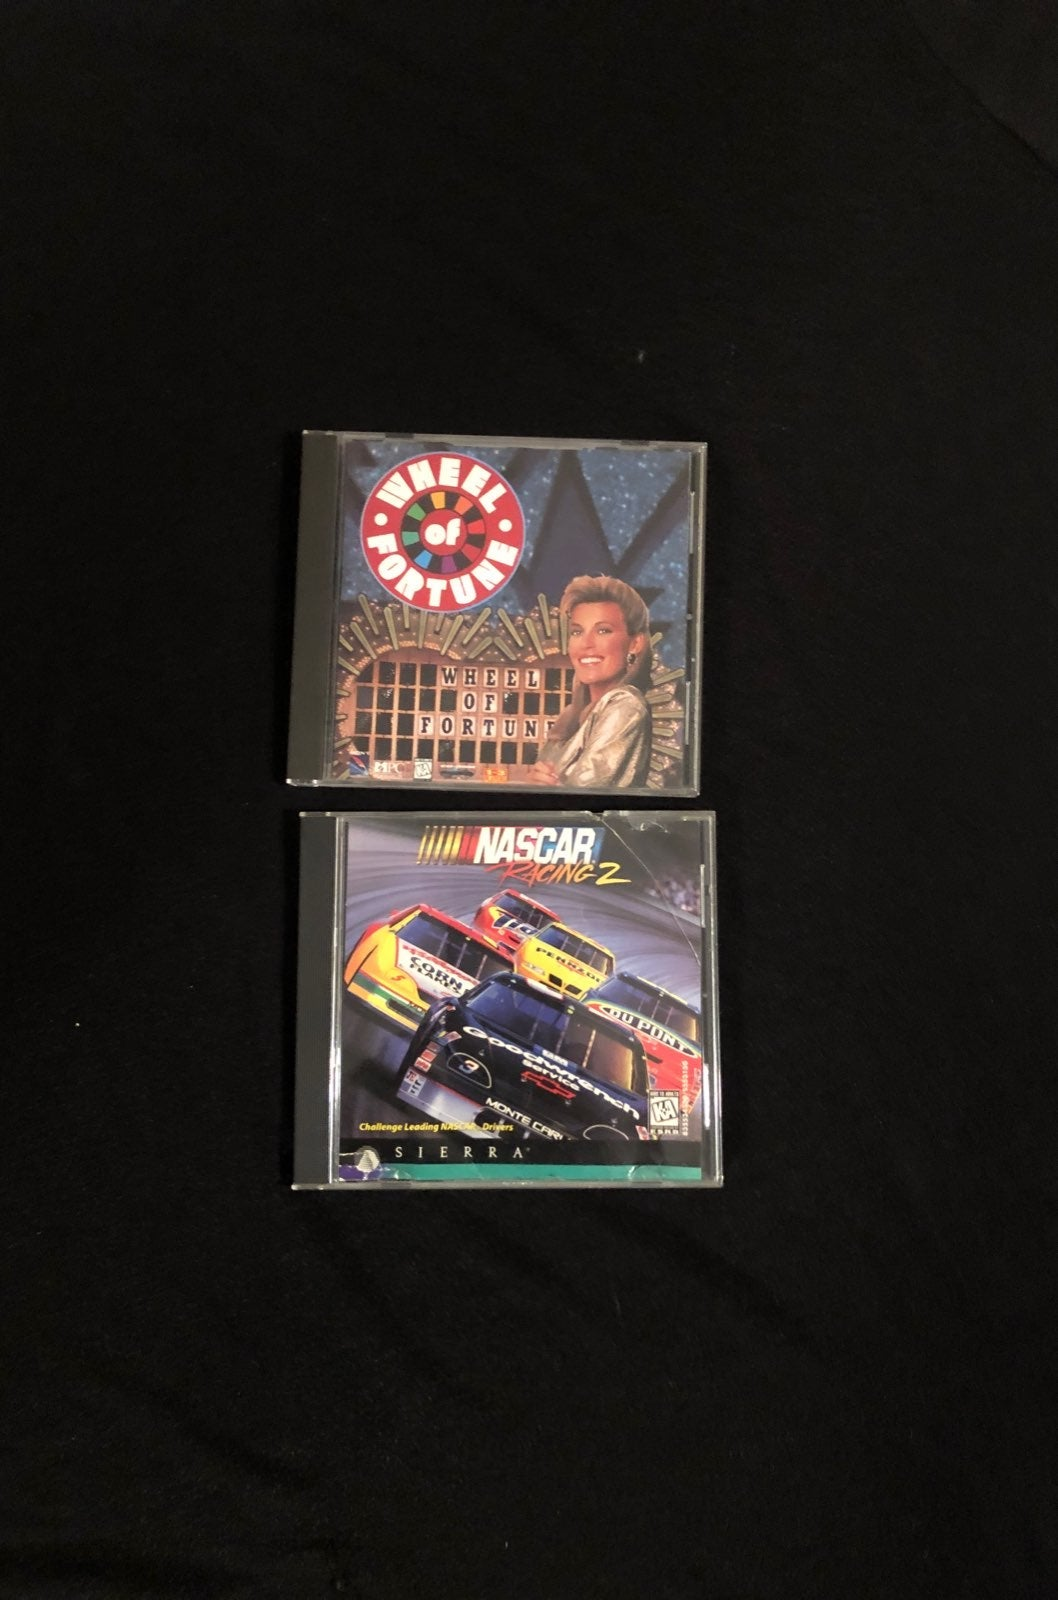 2 Computer Games - Nascar and Wheel of f